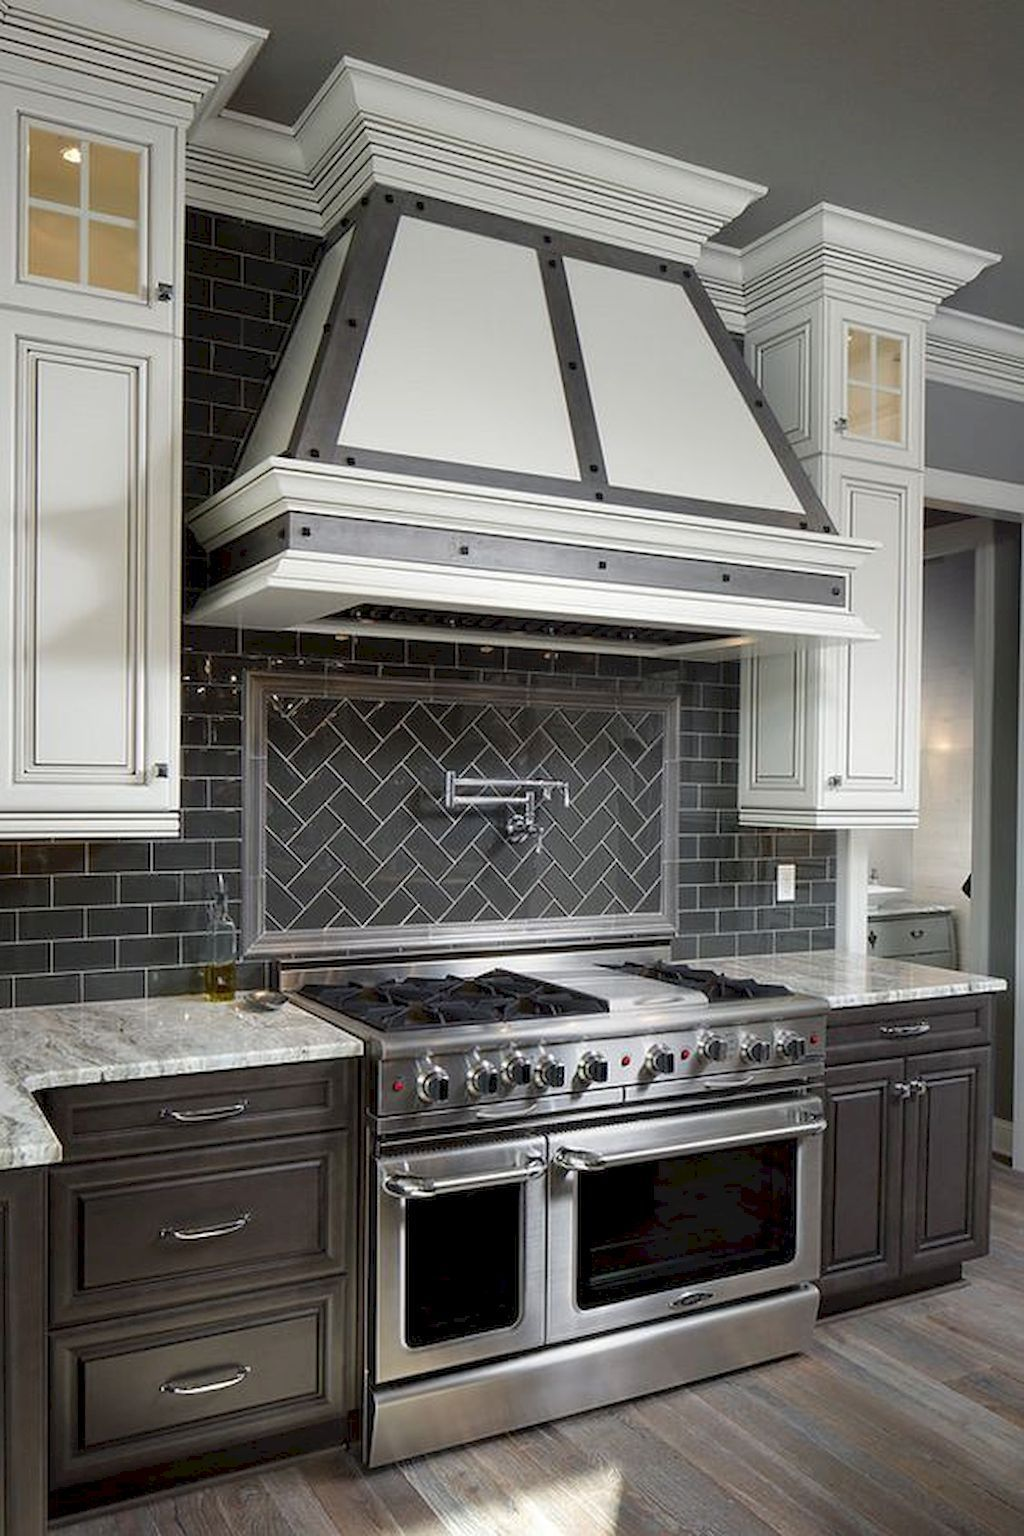 Adorable 45 Wonderful Kitchen Backsplash Decorating Ideas Backsplash Decor Ideas Kitchen Kitchen Backsplash Designs Chic Kitchen Best Kitchen Cabinets